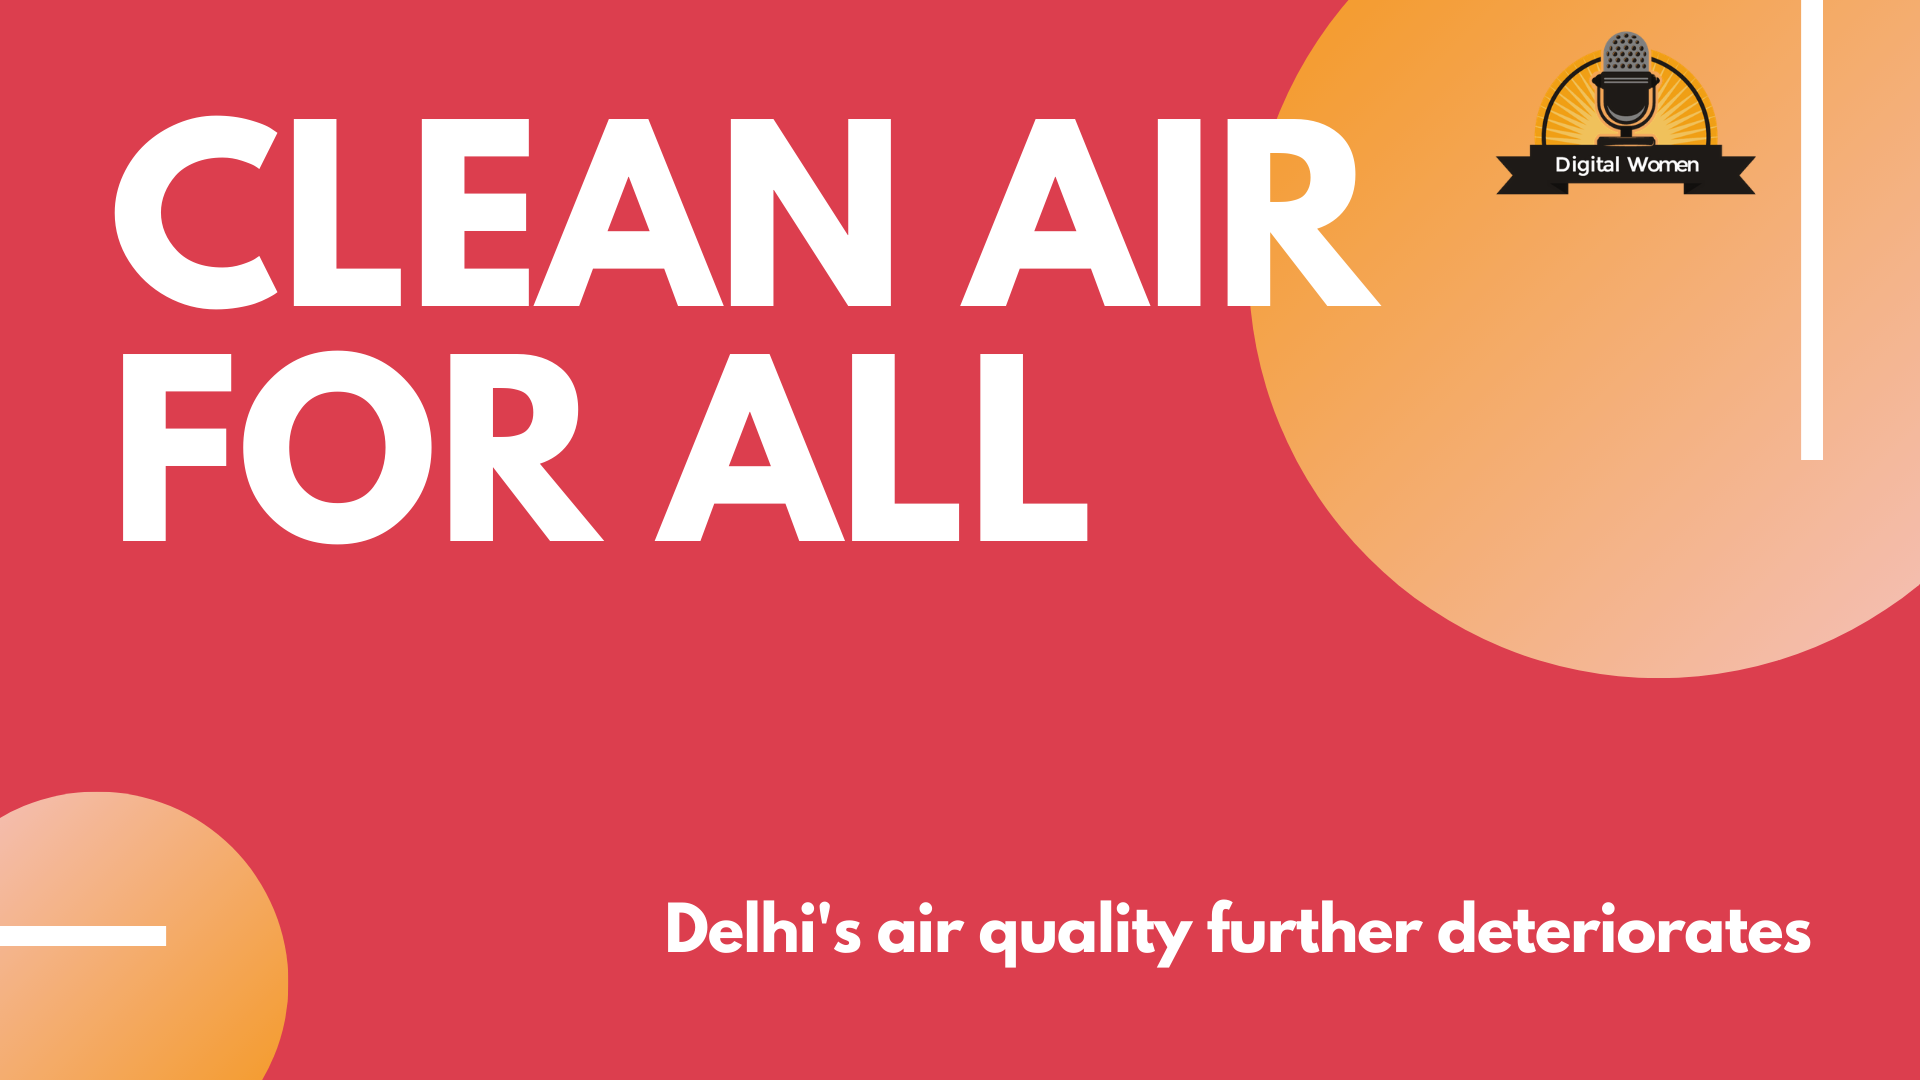 Delhi's air quality further deteriorates